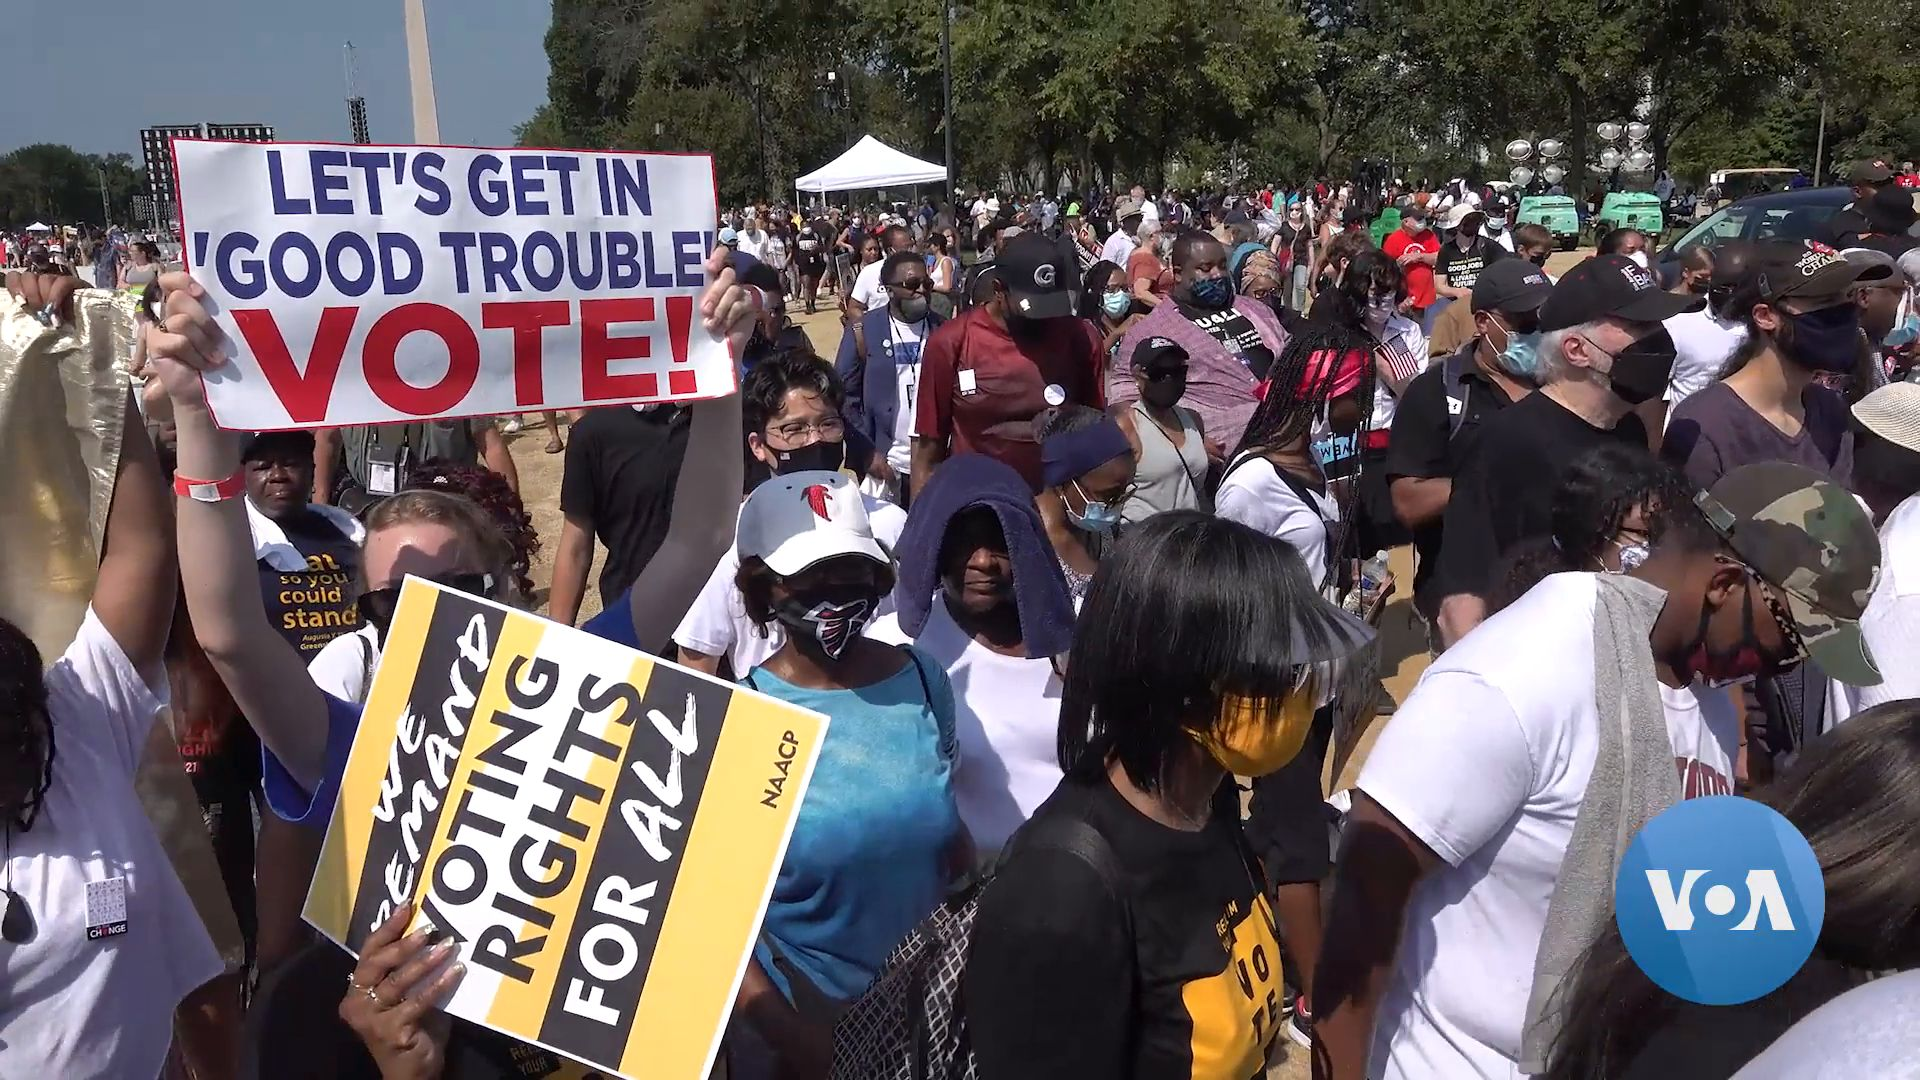 Thousands March for Fair, Easy Access to Vote for All